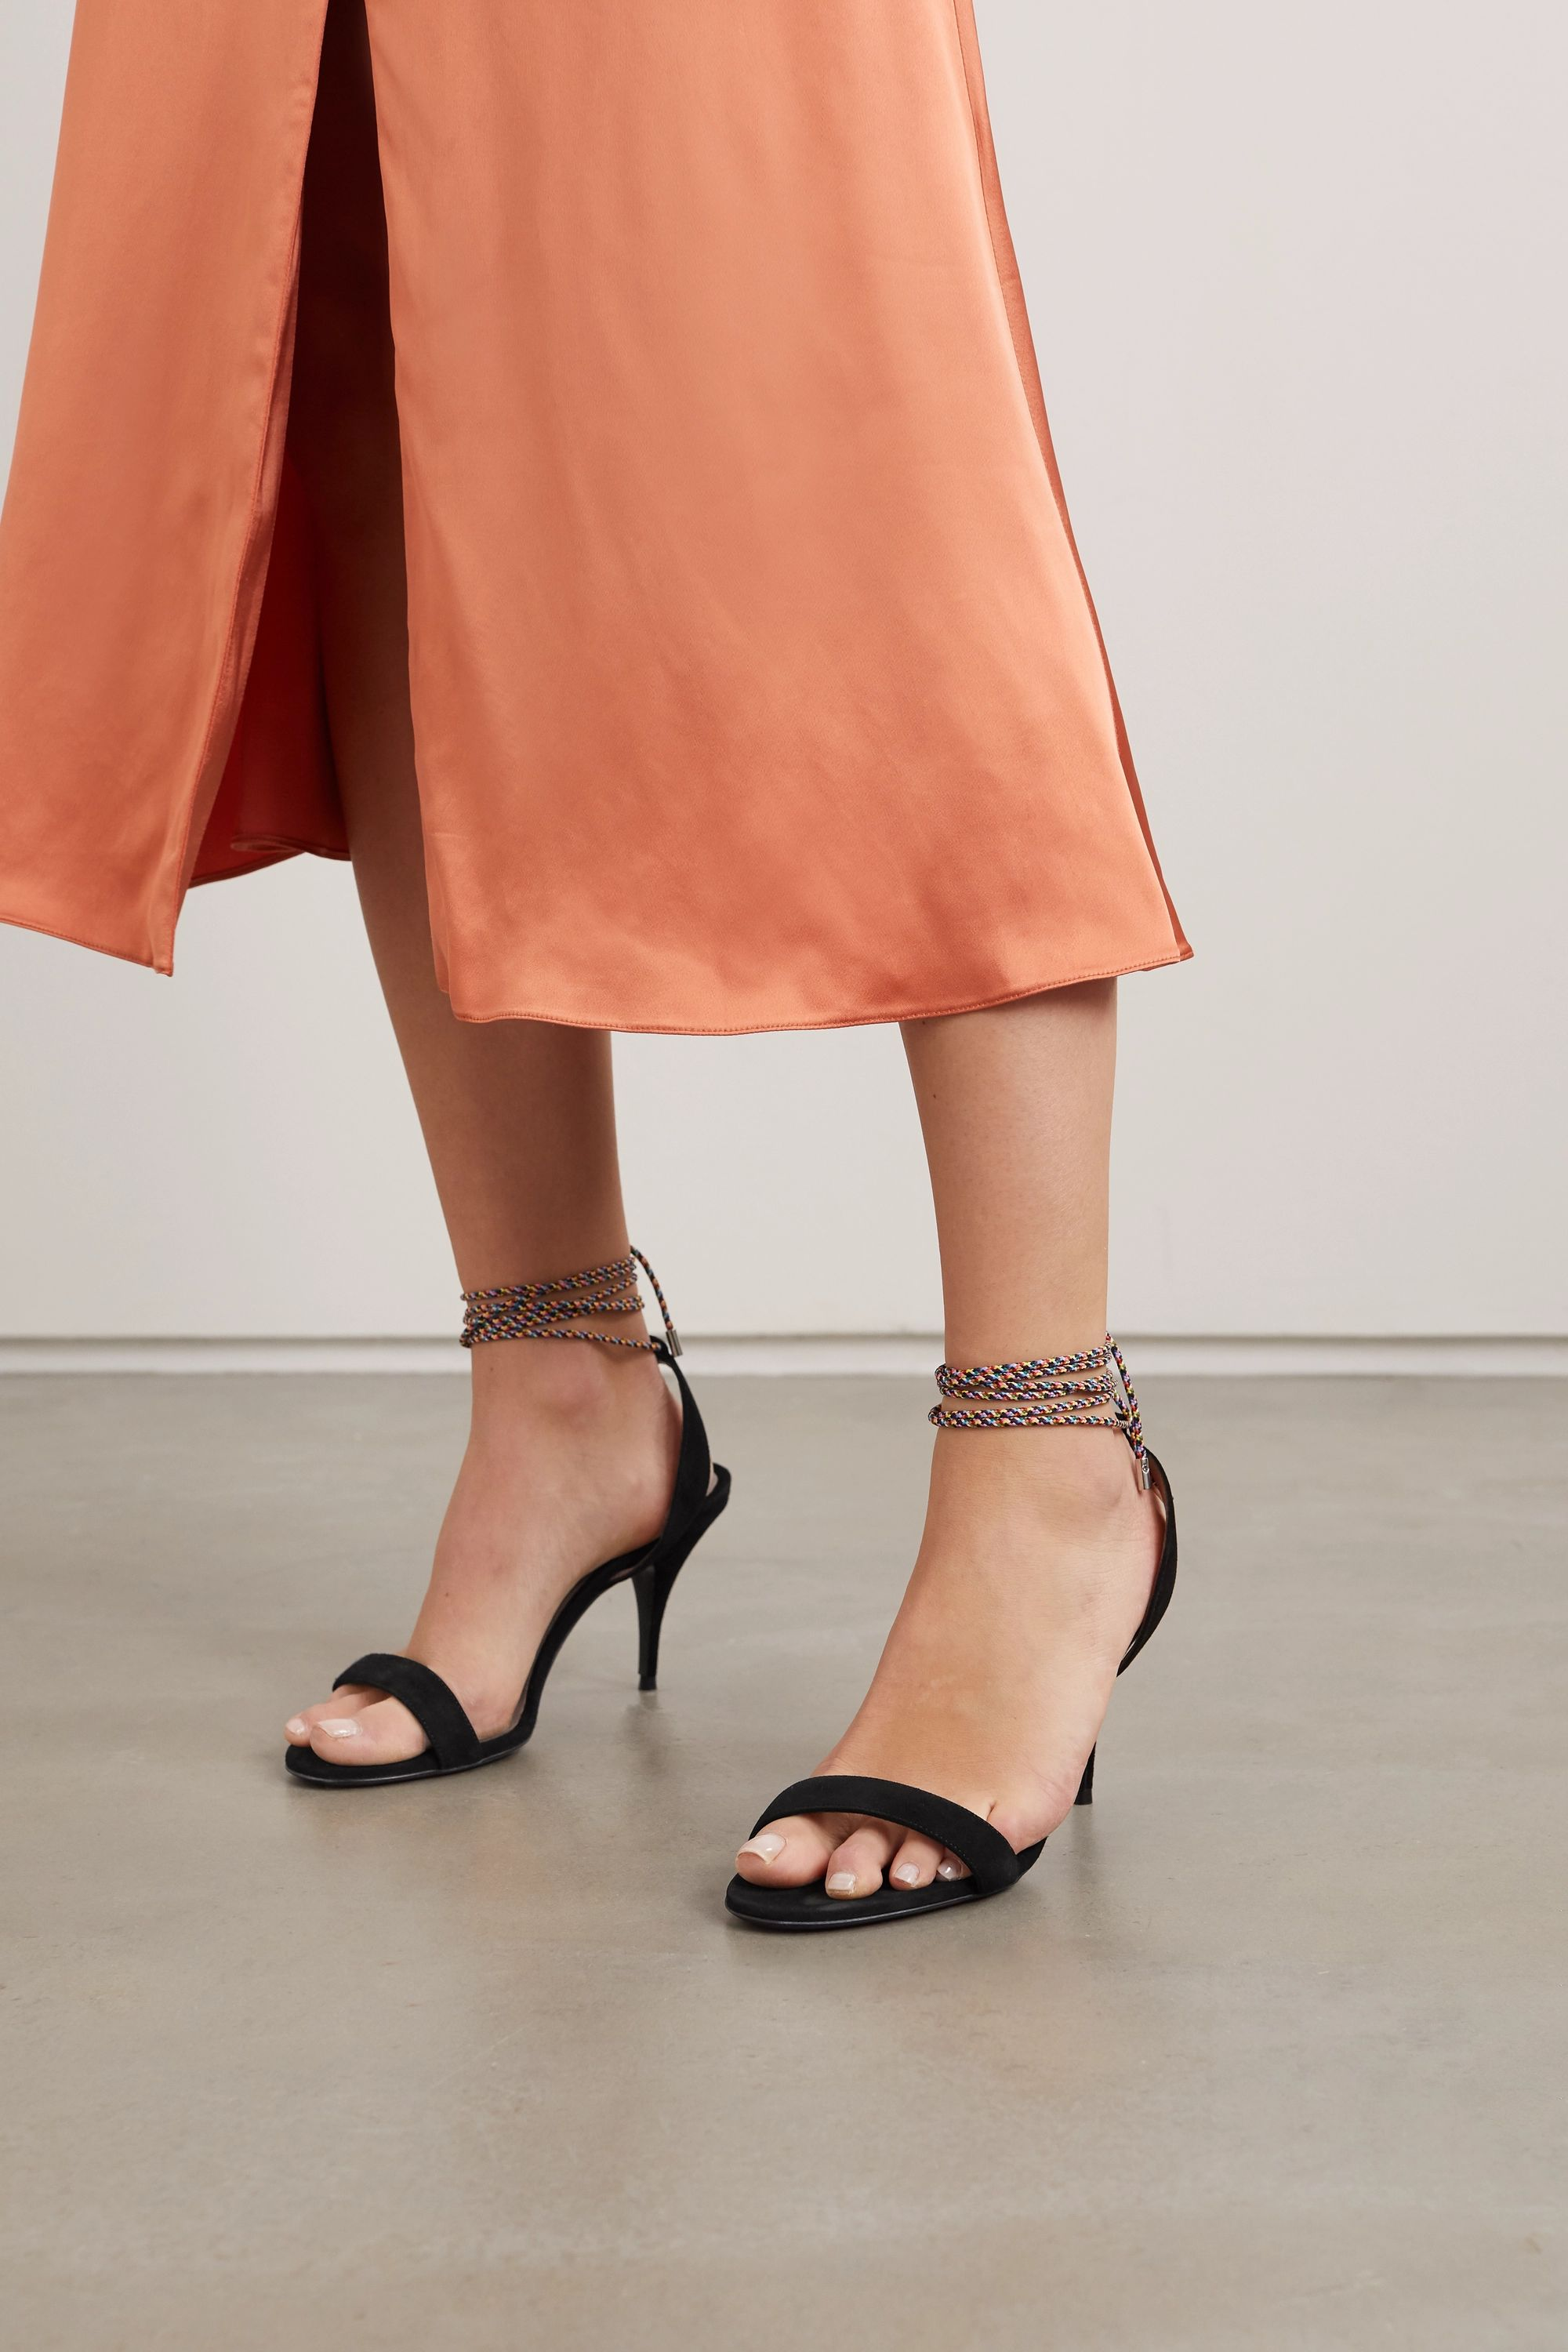 Tabitha Simmons Ace suede sandals